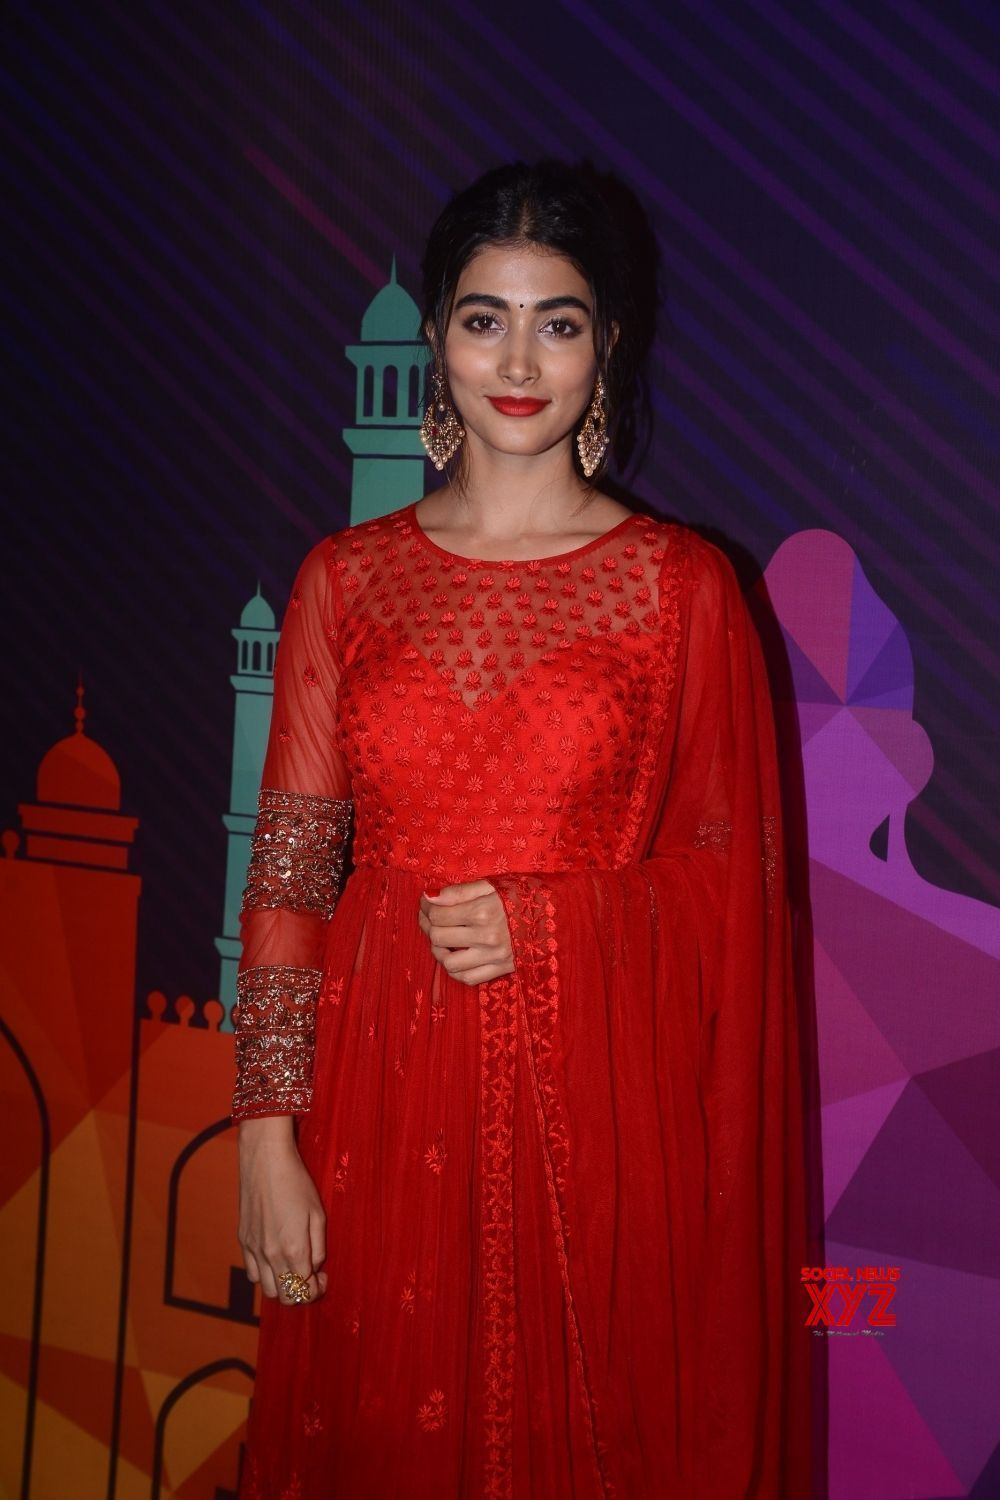 Mumbai Fbb Colors Femina Miss India 2018 Pooja Hegde Gallery Social News Xyz Photos Fbb Colors Feminamissindia2018 Poojahegde